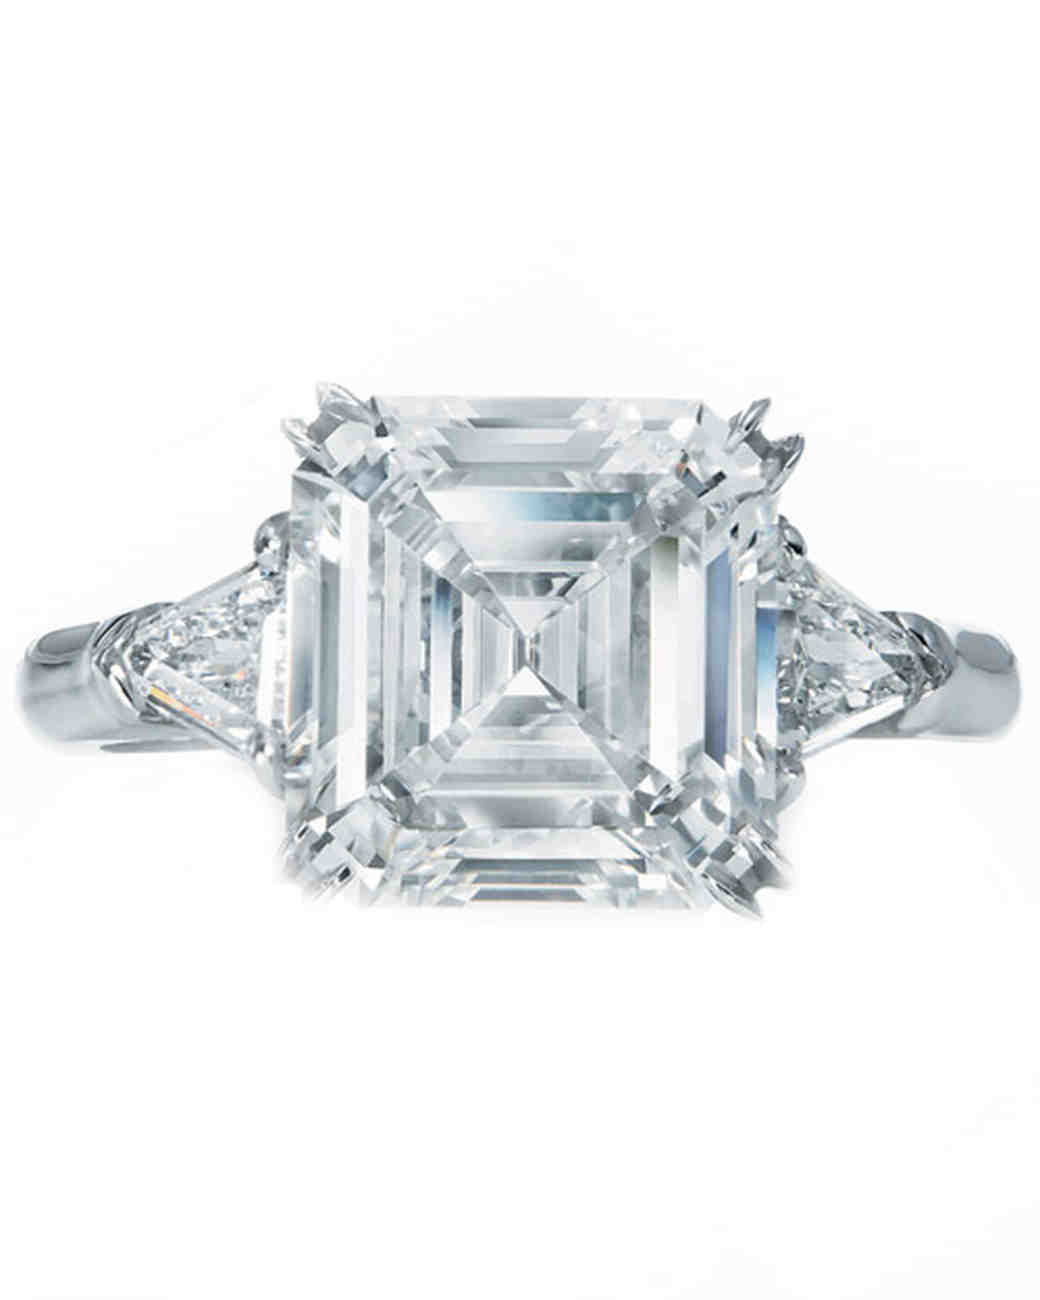 winston_87736_88149_87737_diamond_cushion_cut_solitaire_ring_with_baguettes_1_b.jpg